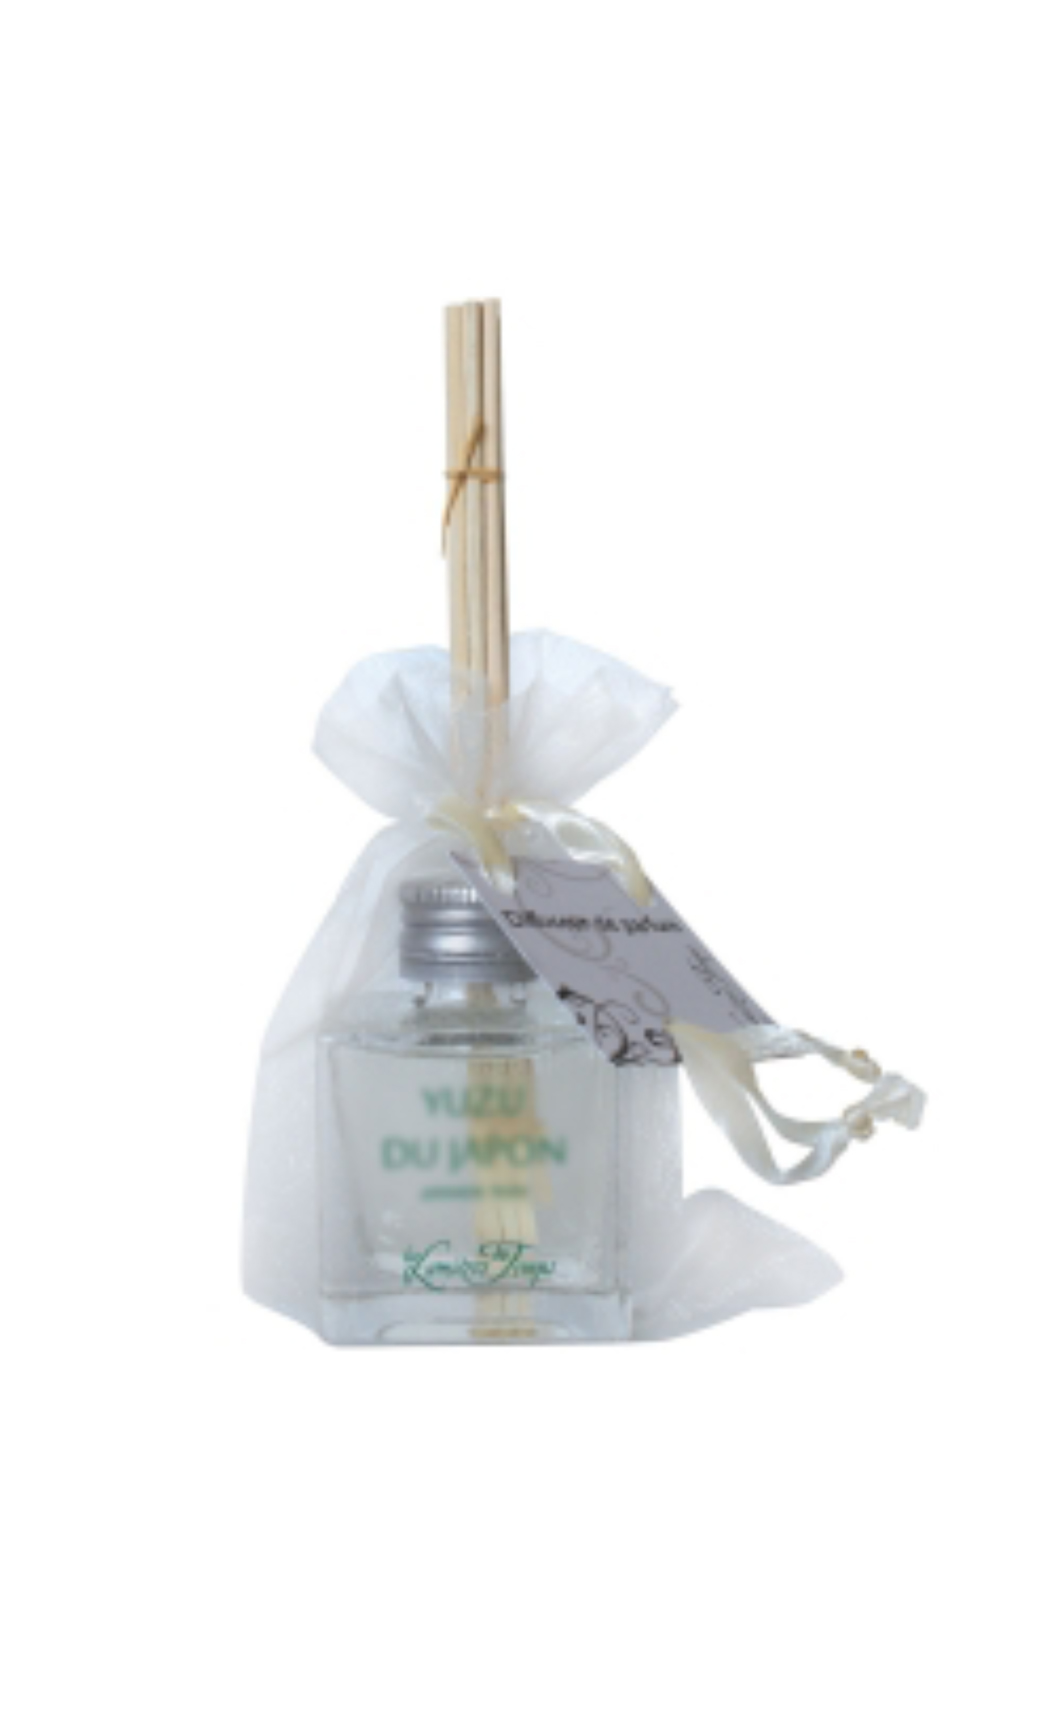 Opium Scented Reed Diffuser Sticks by Les Lumieres du Temps - Shop Online in India